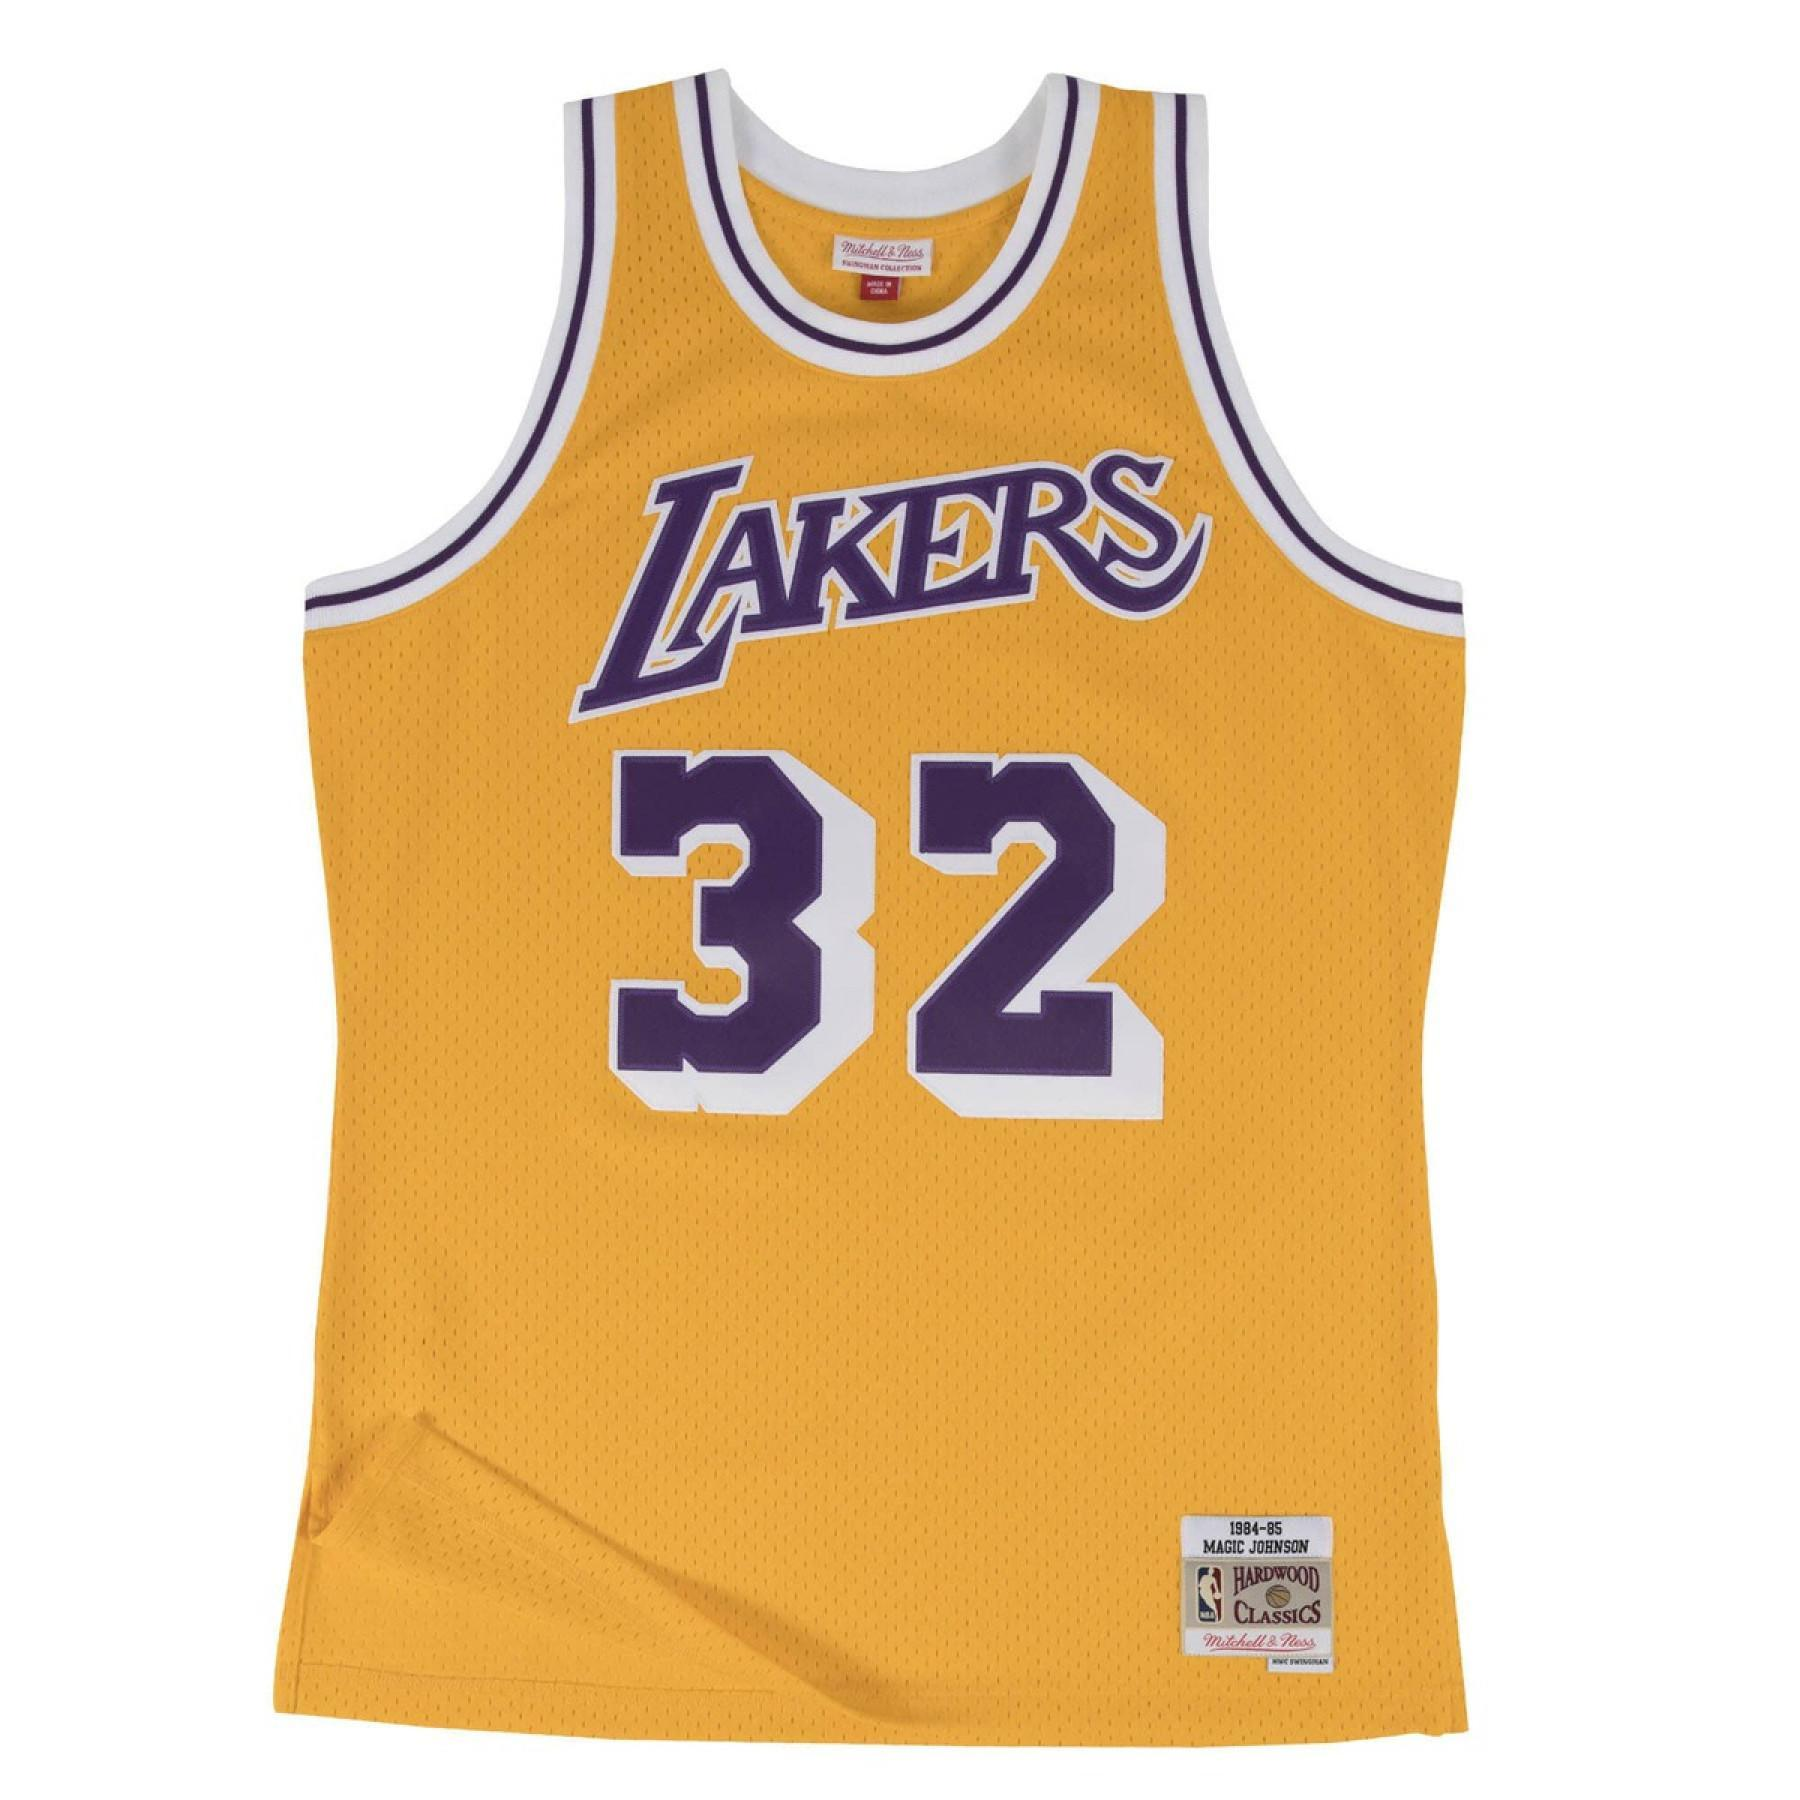 Magical johnson jersey Los Angeles Lakers 1984-85